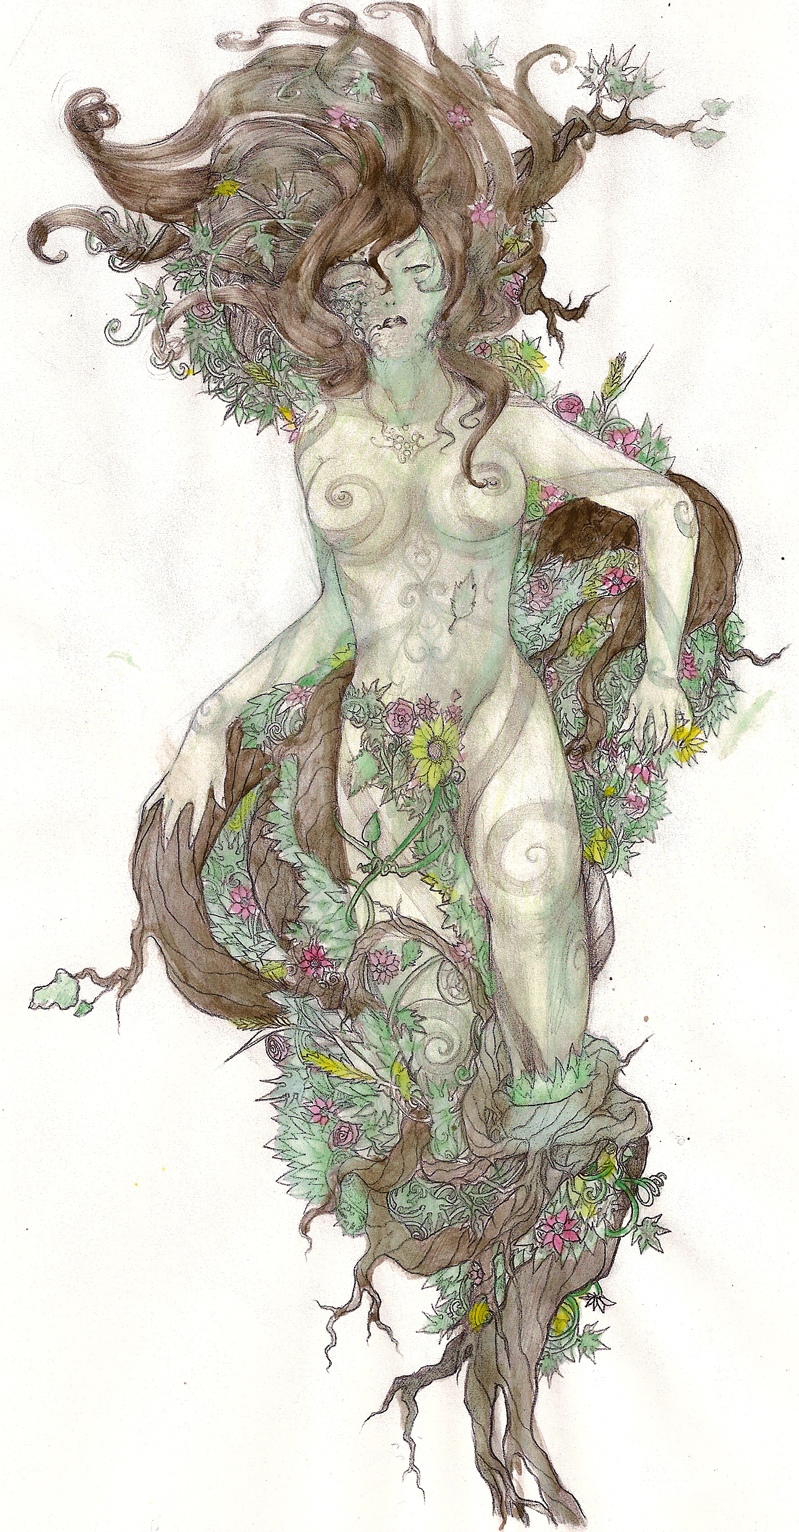 Gaea in color by GravihK